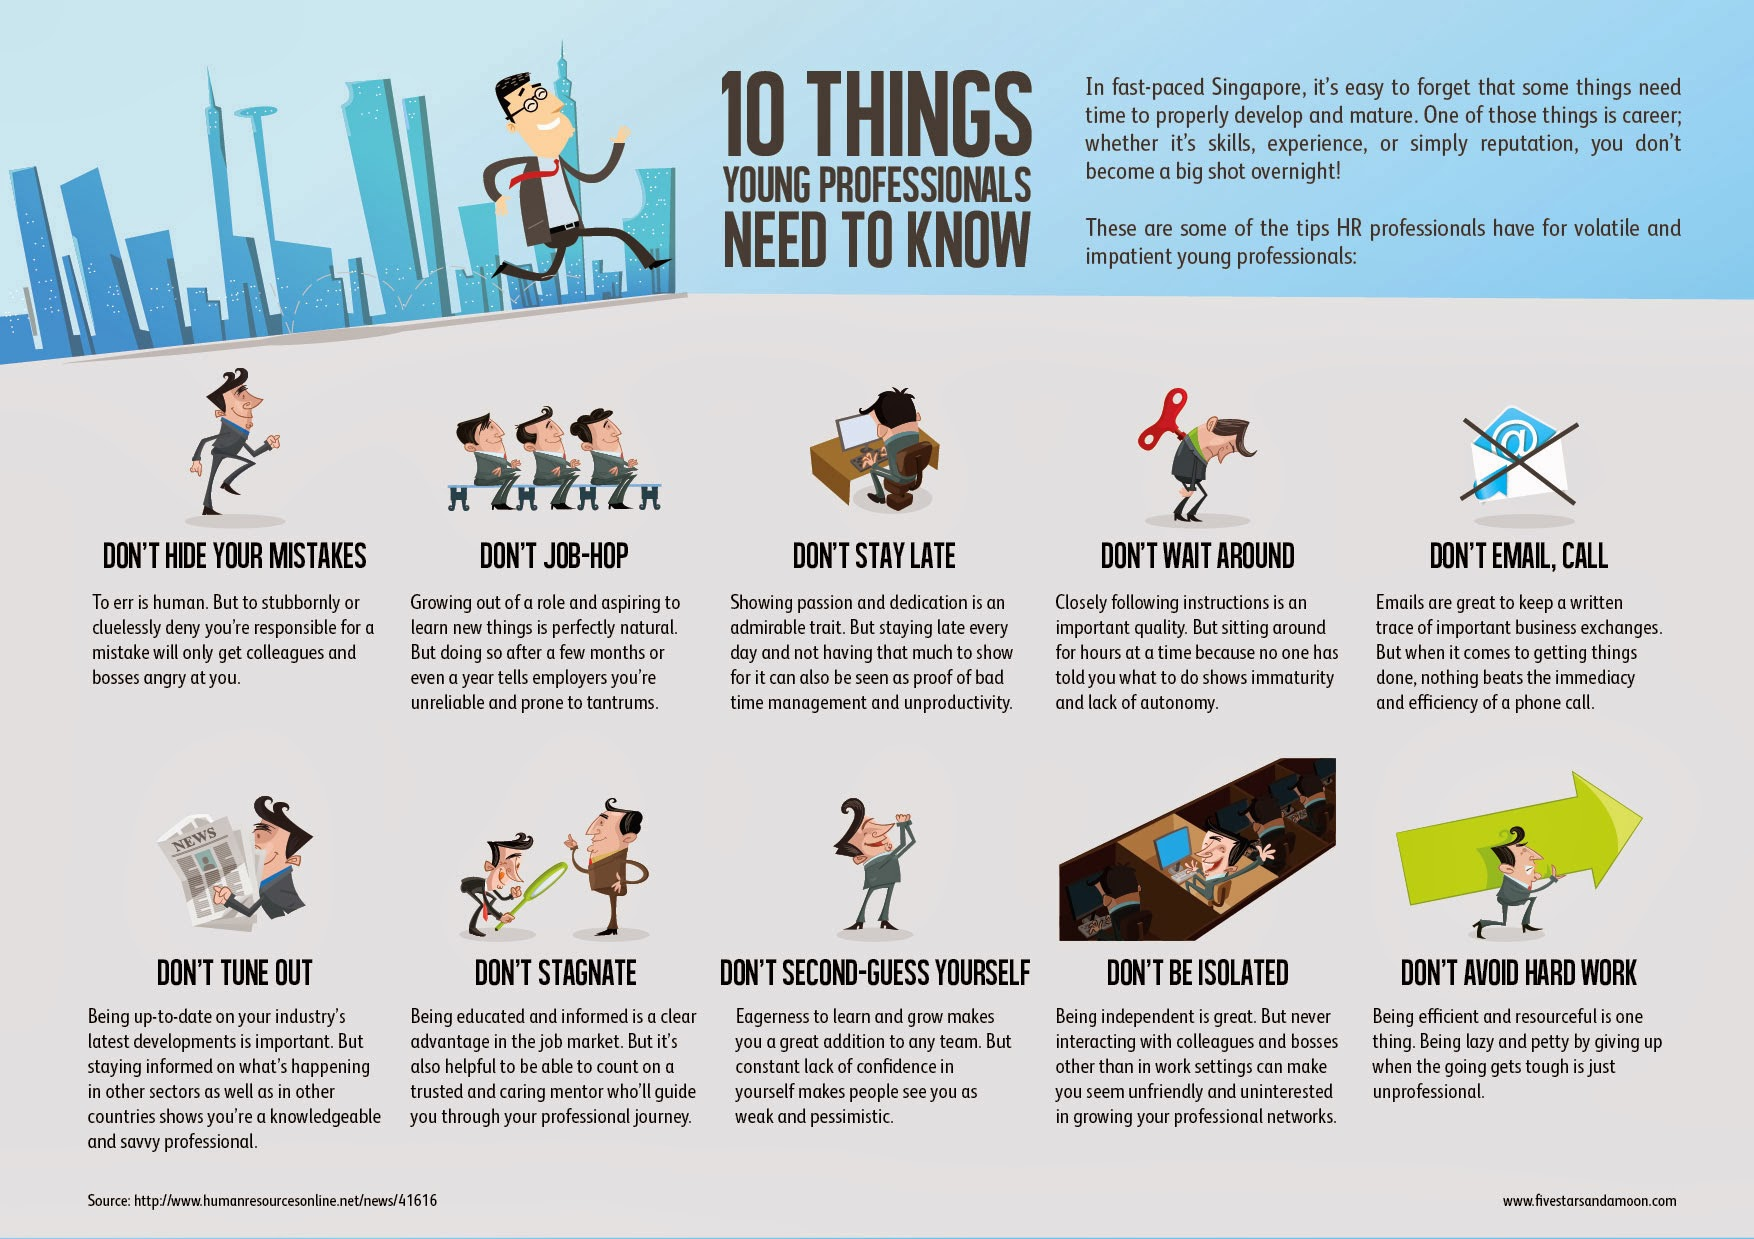 10 Things a Young Professional Should Know